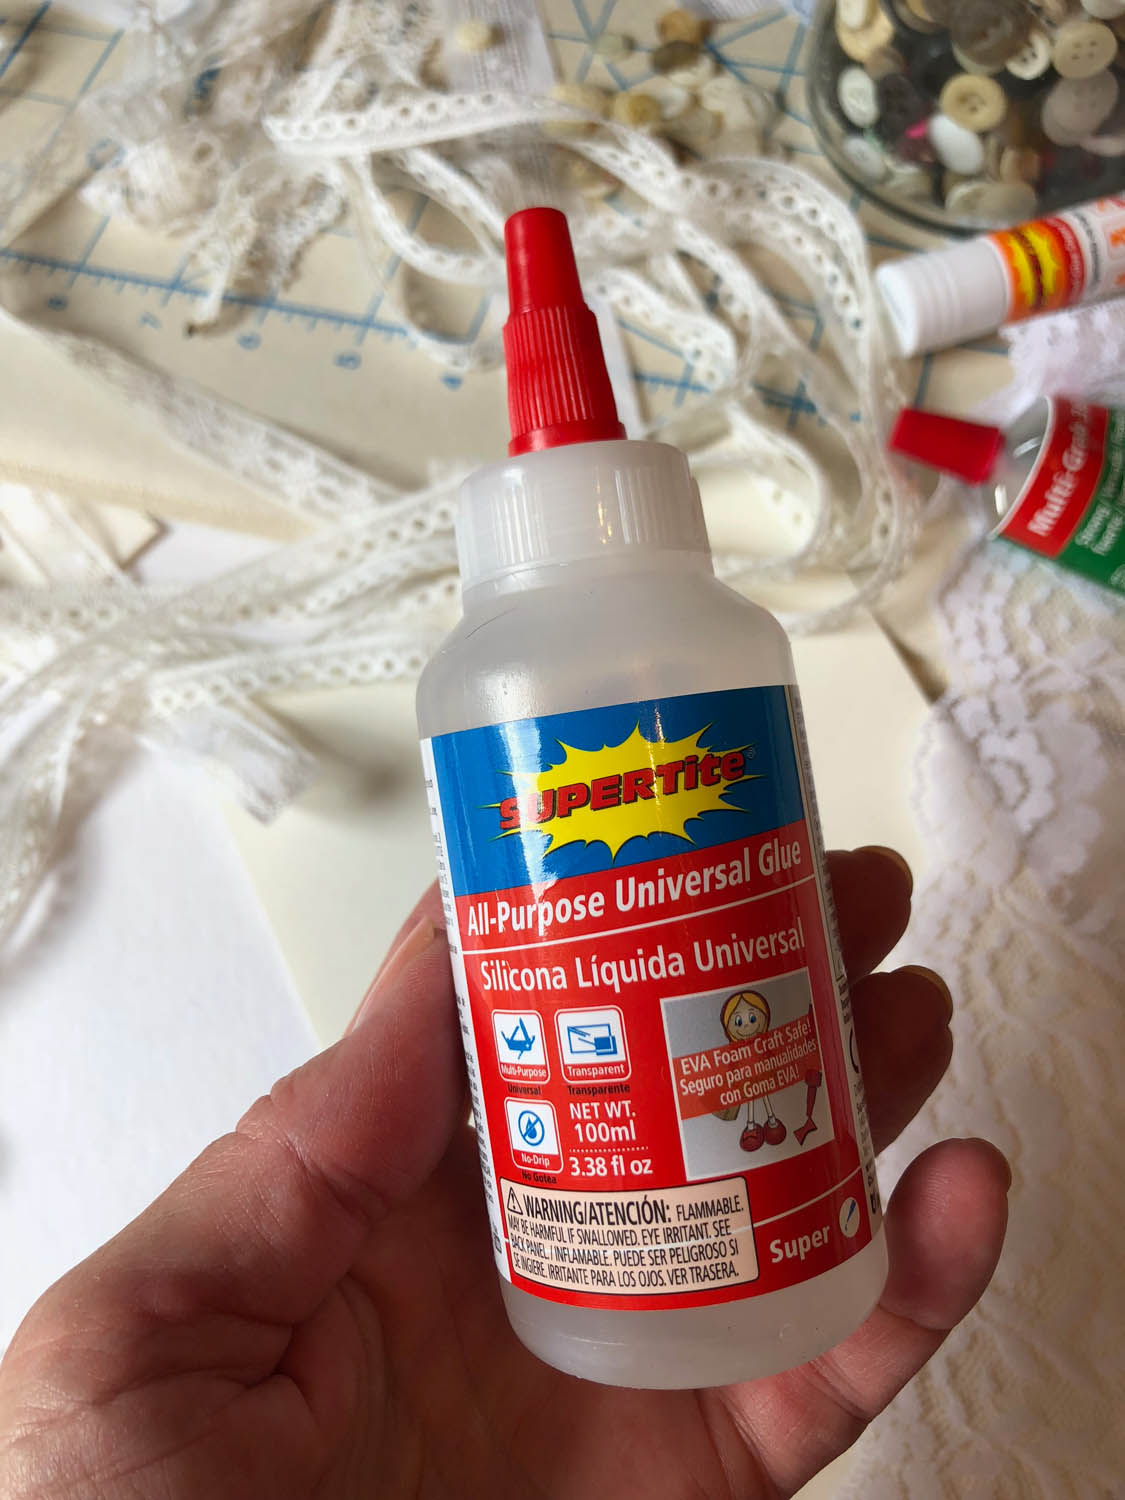 supertite-universal-glue-for-card-project.jpg